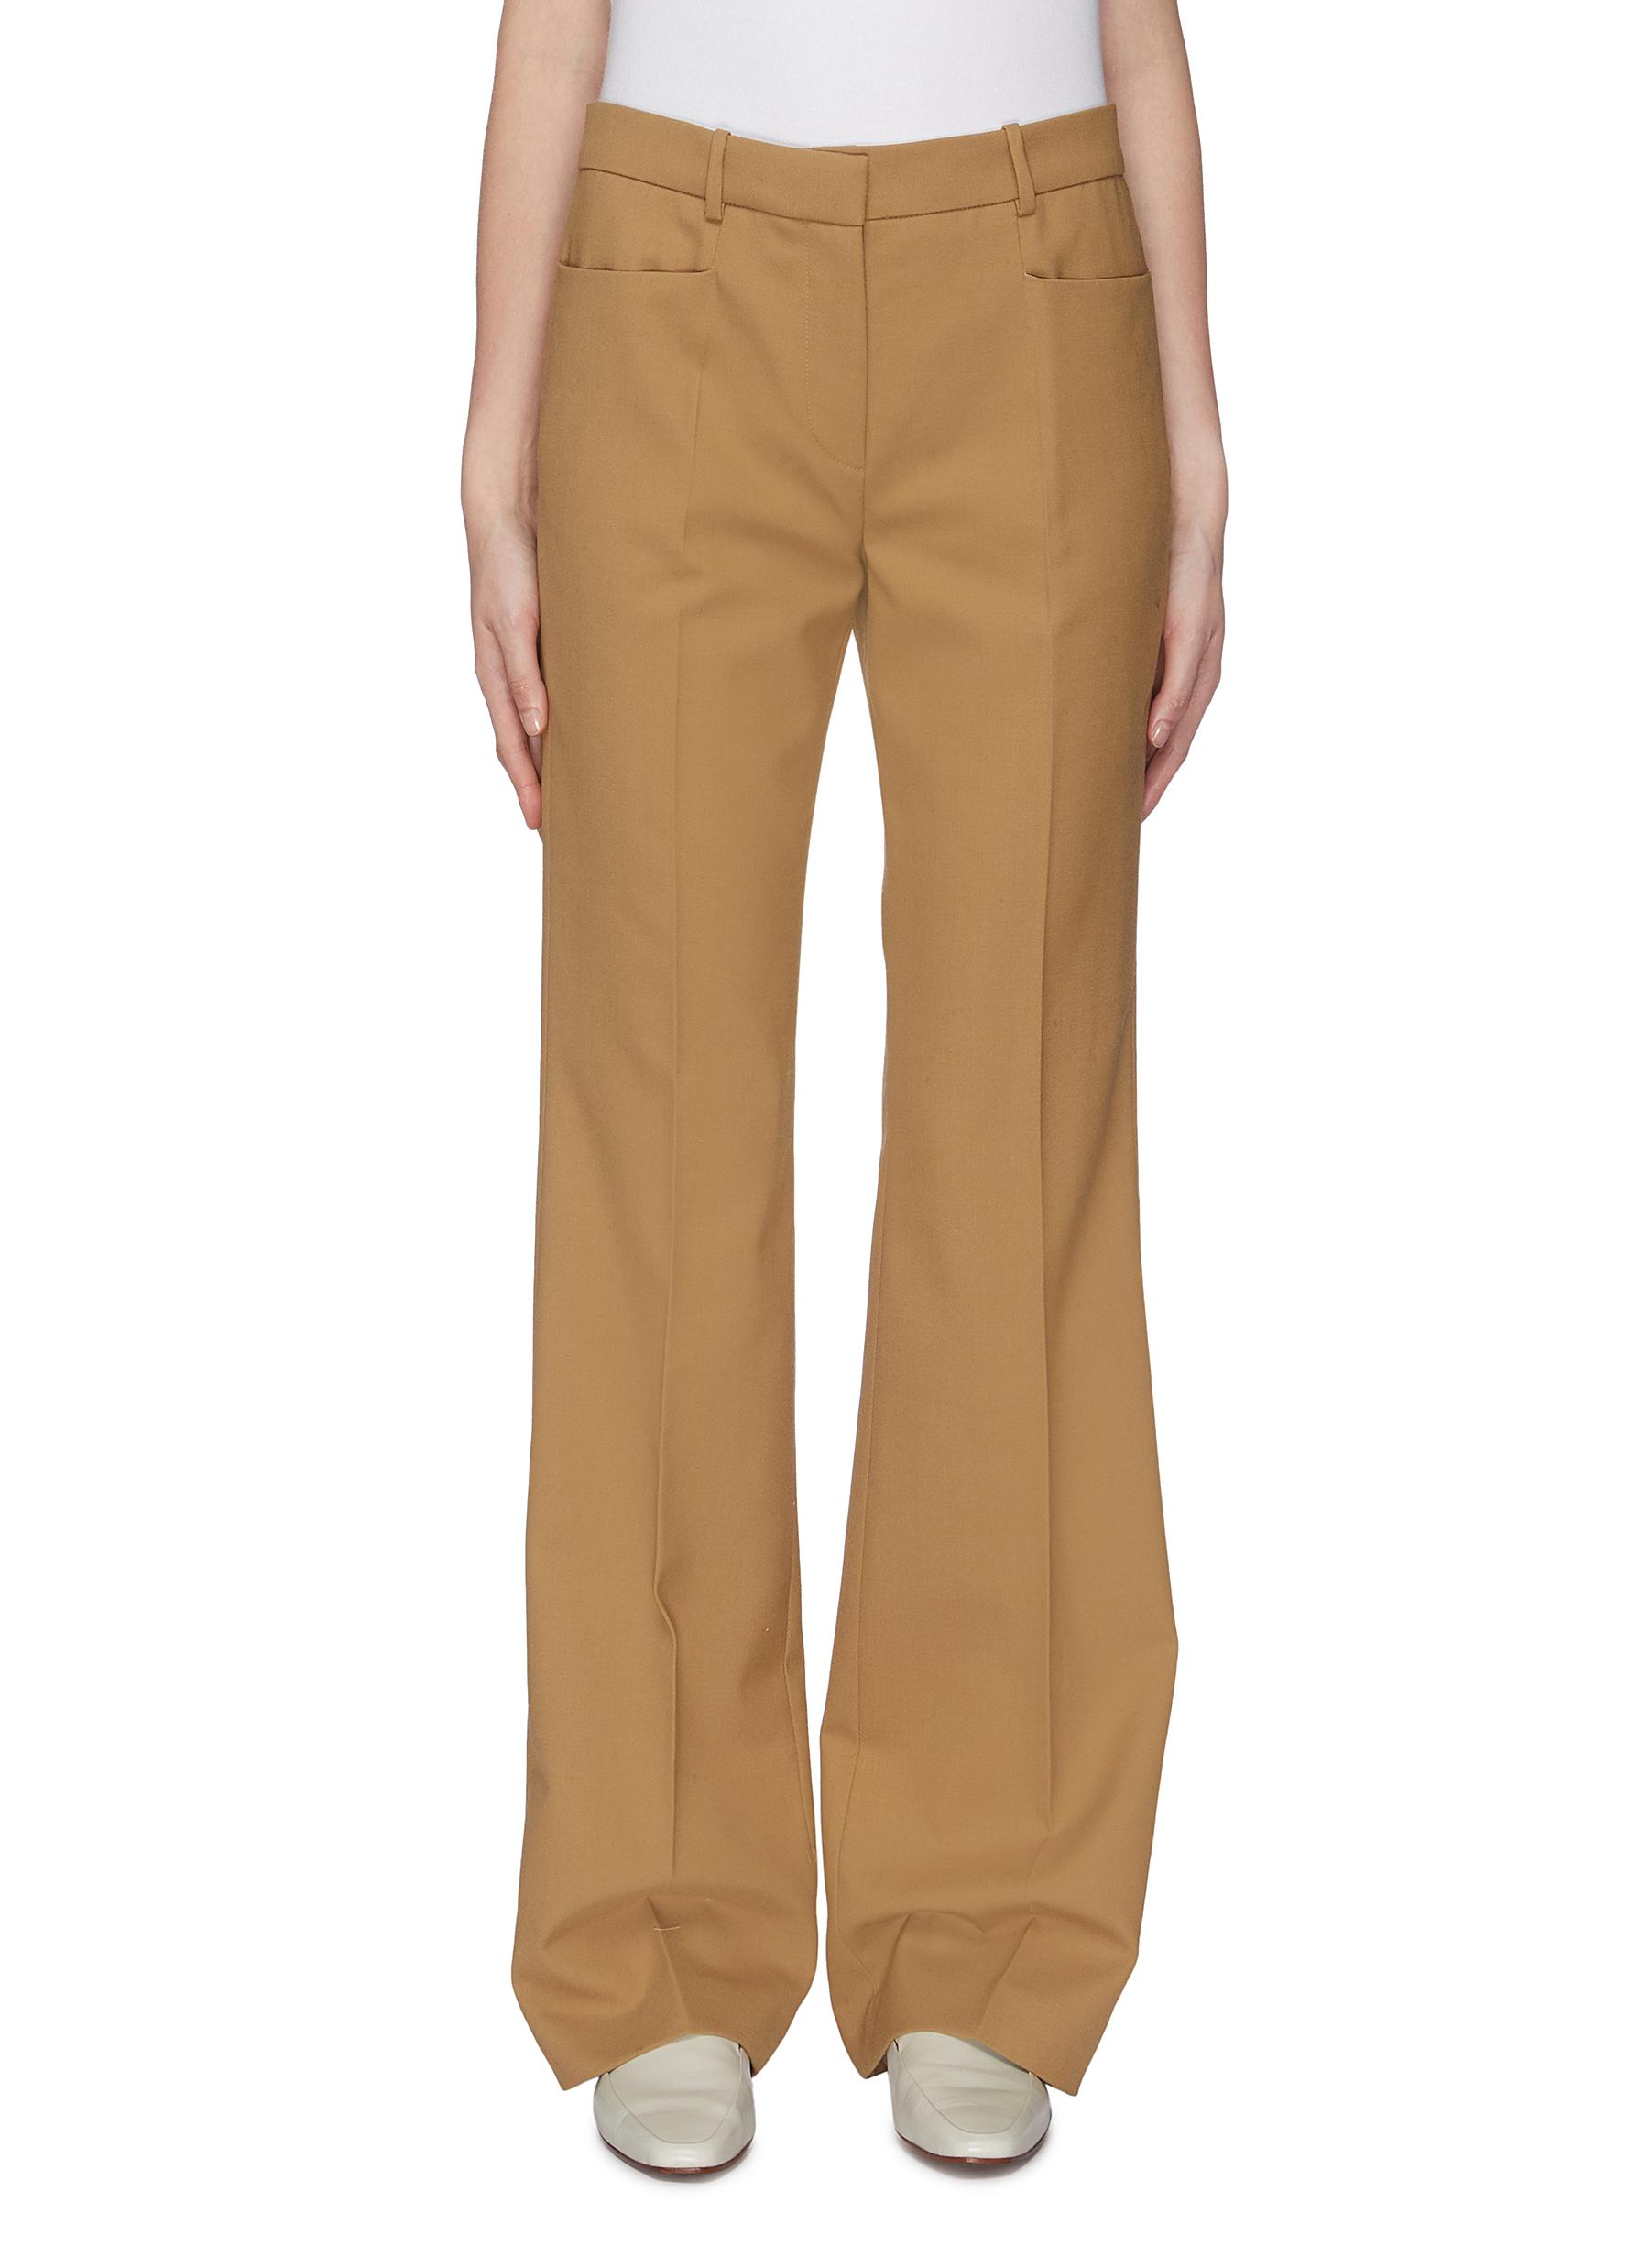 Flared suiting pants by Joseph